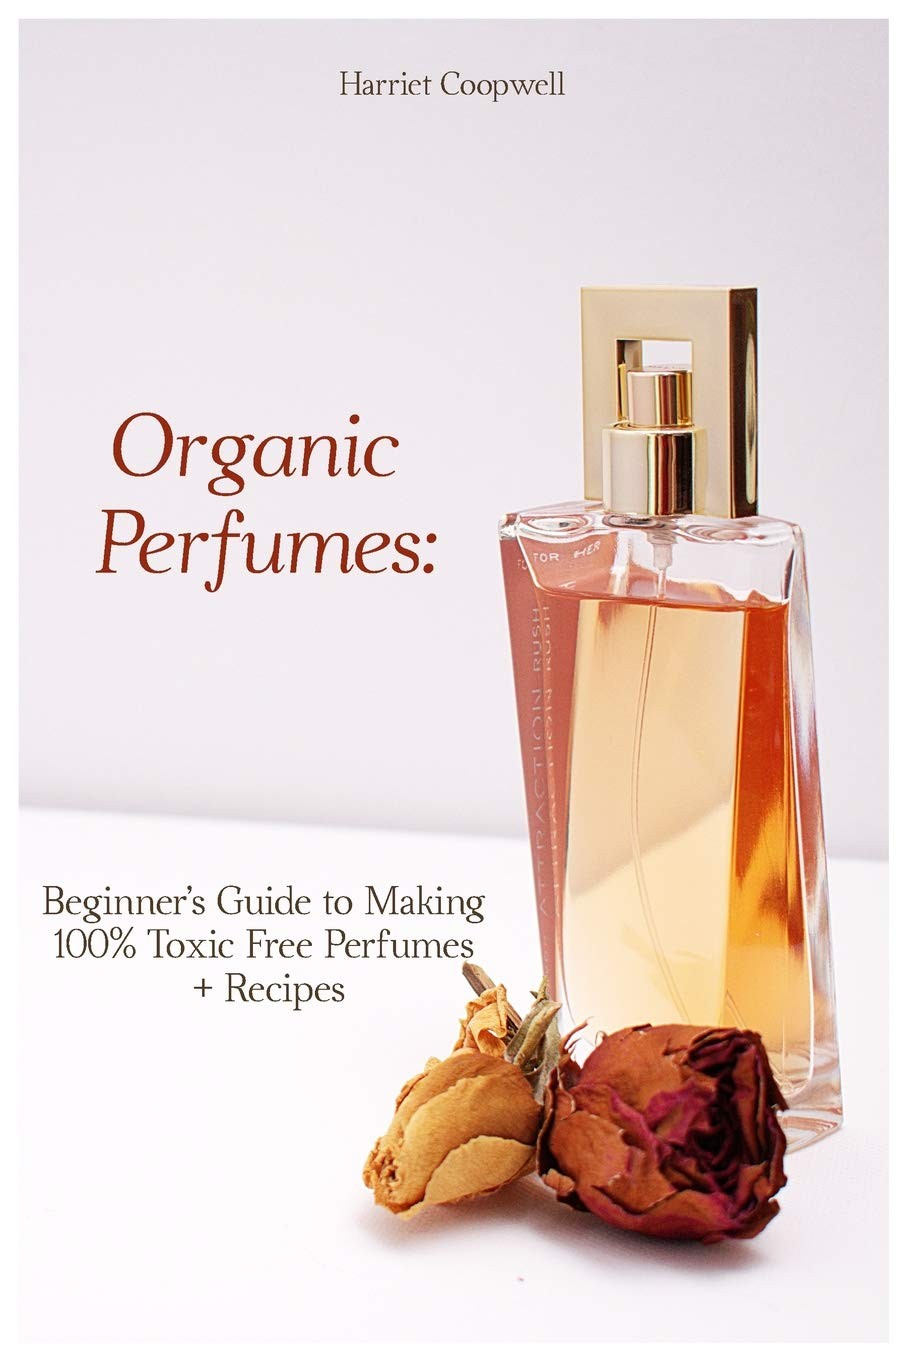 Organic Perfumes: Beginner's Guide to Making 100% Toxic Free Perfumes + Recipes